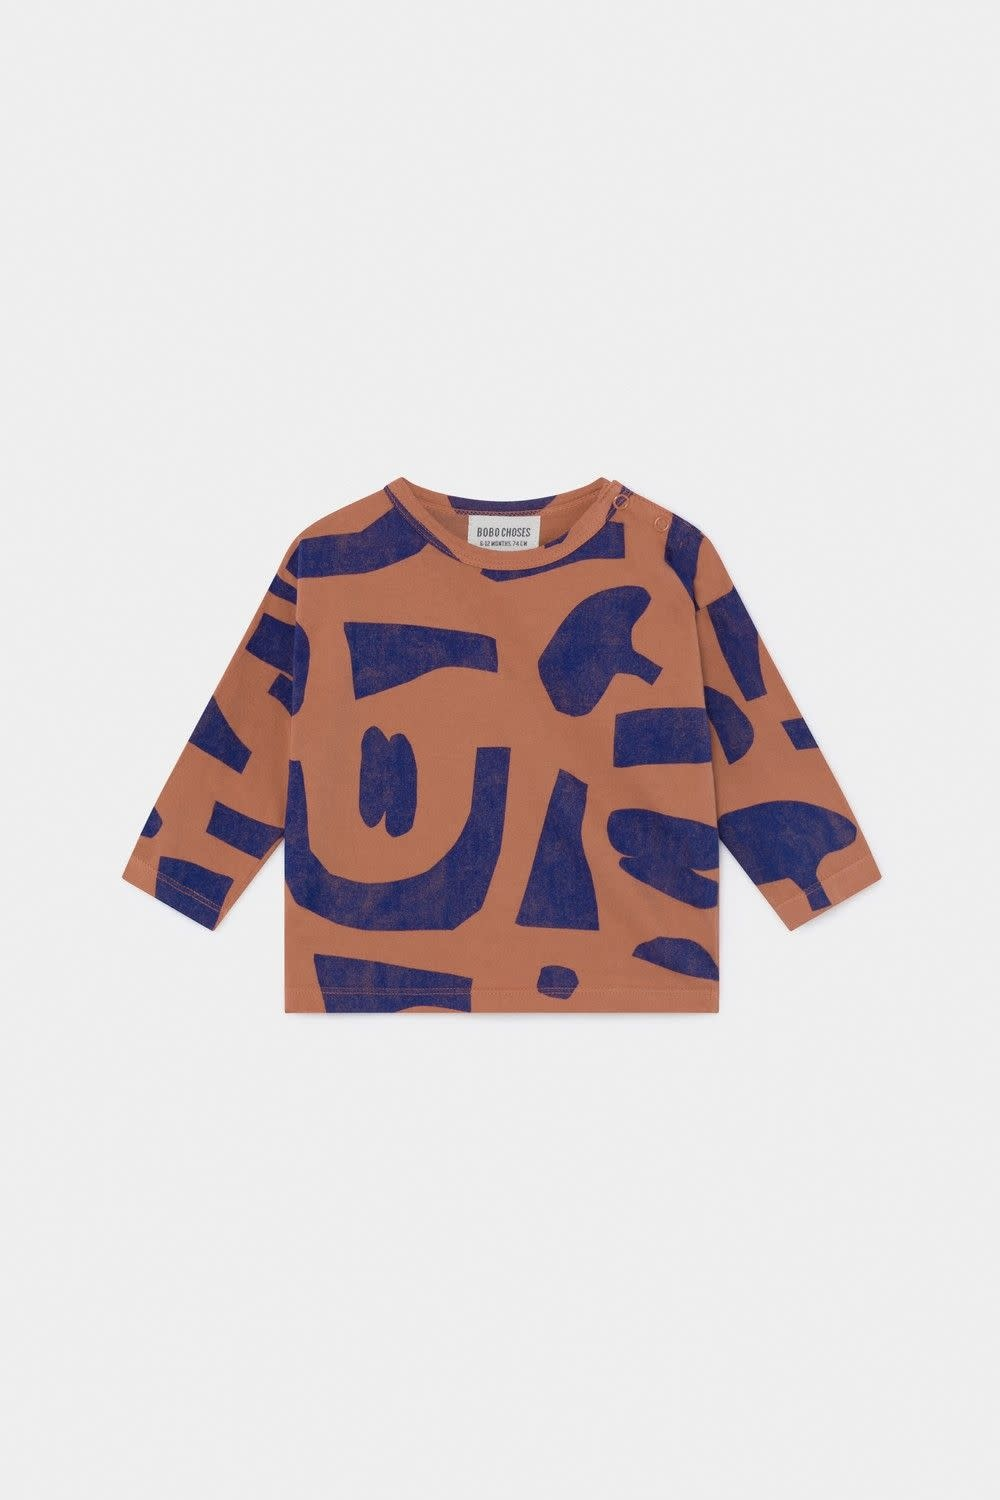 BOBO CHOSES Abstract Long Sleeve Tee Shirt